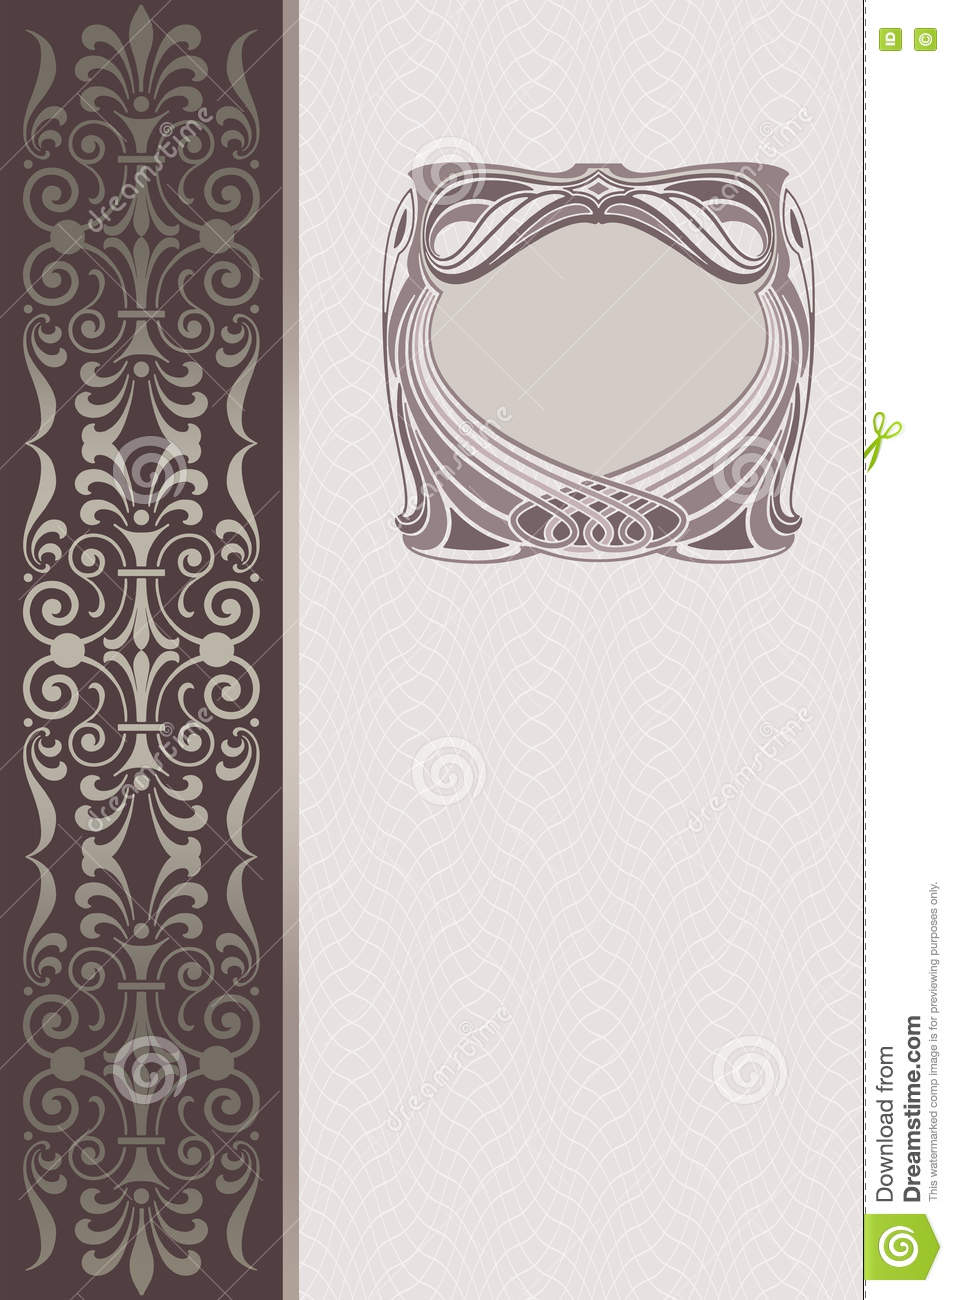 Old Fashioned Book Cover Design : Decorative background with ornamental border and frame